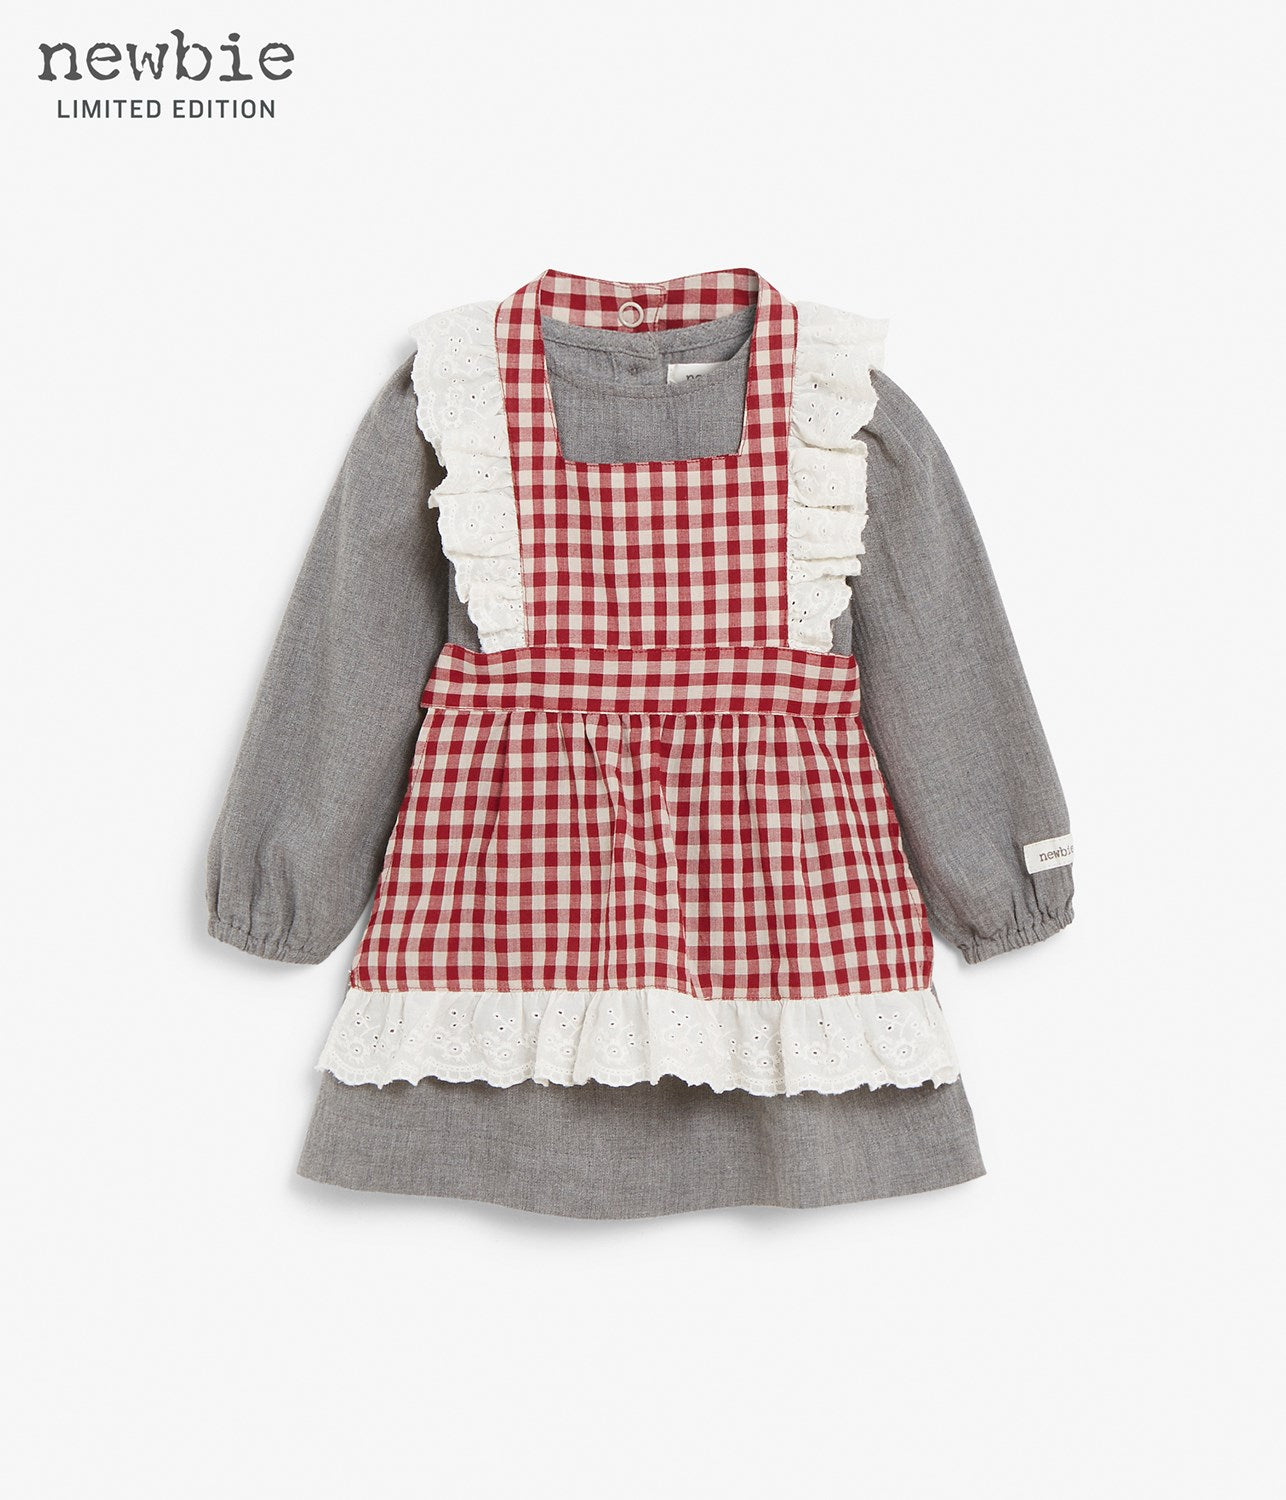 Baby grey dress with red checkered apron and frills